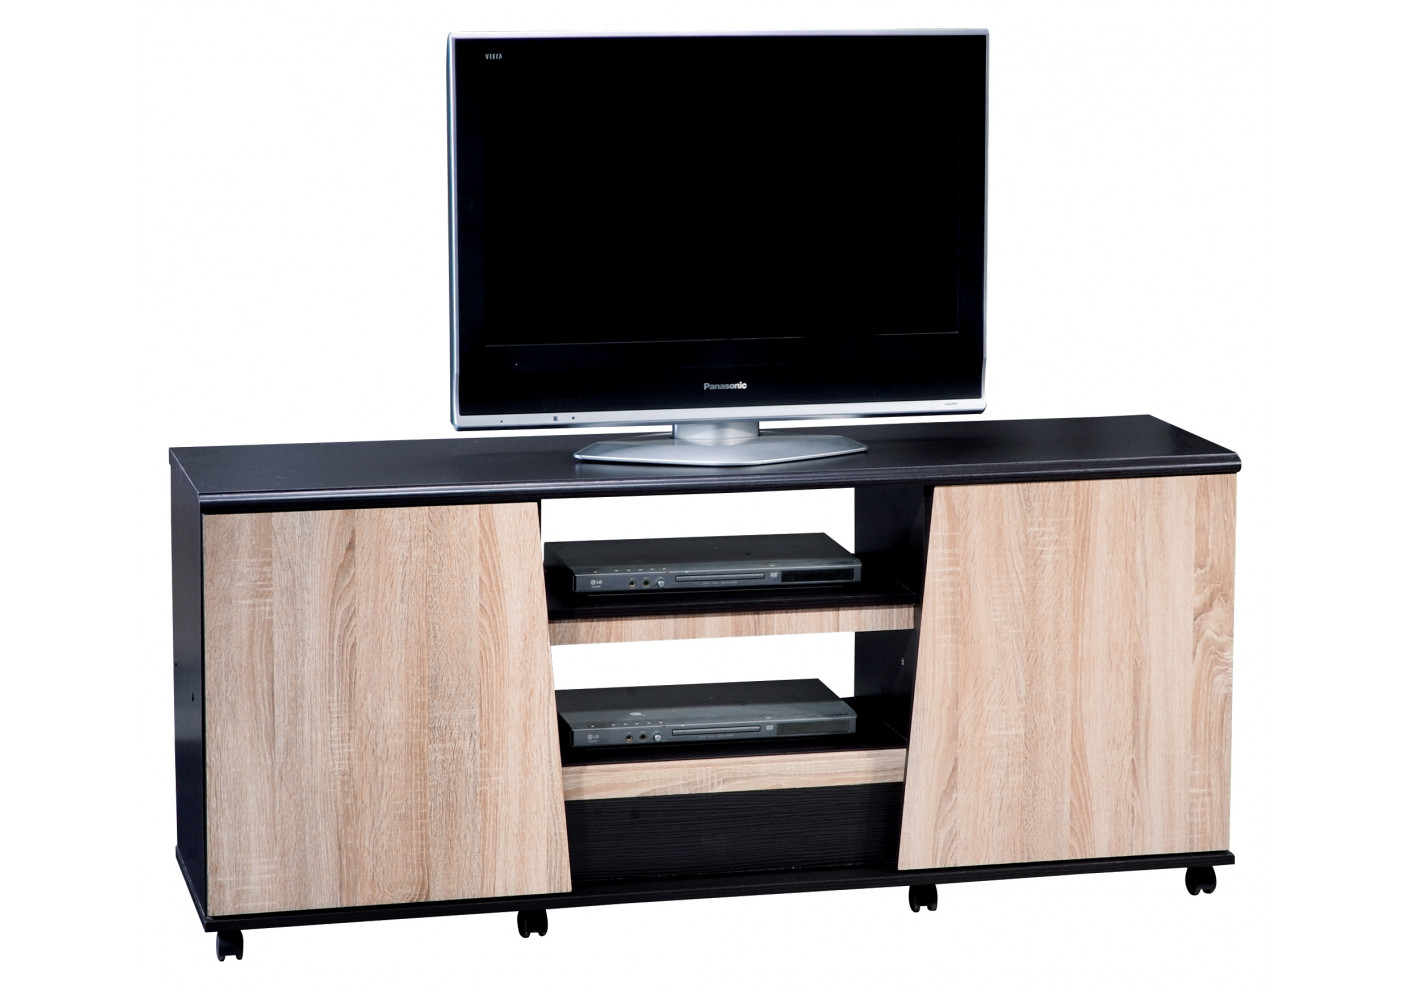 meuble tv pivotant move in ch ne vicomte meubles tv salon. Black Bedroom Furniture Sets. Home Design Ideas